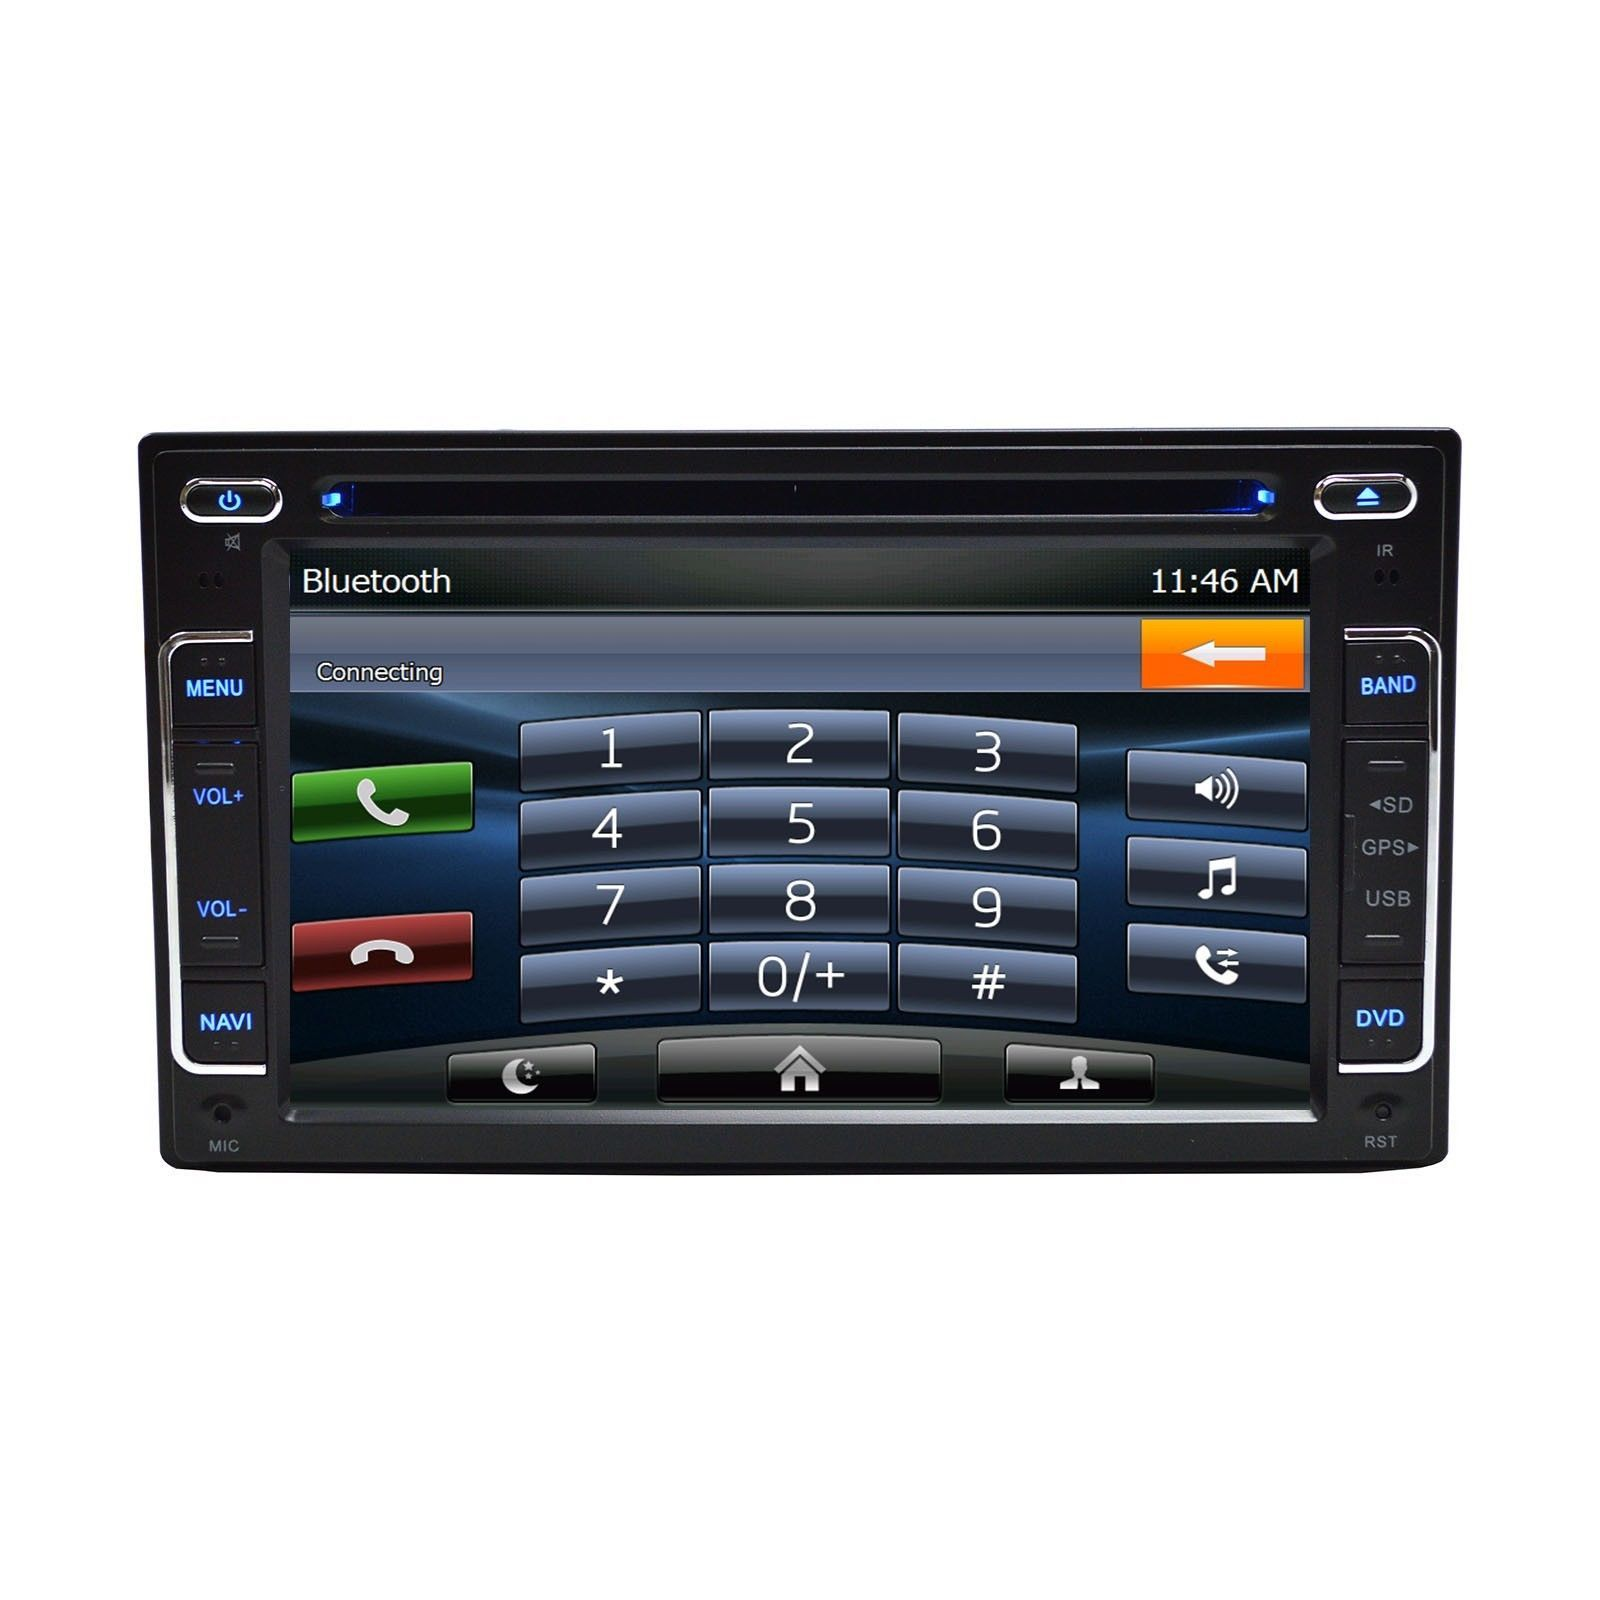 """6.2"""" DVD Navigation Touchscreen Multimedia Radio for 2012 Ford Taurus image 6"""